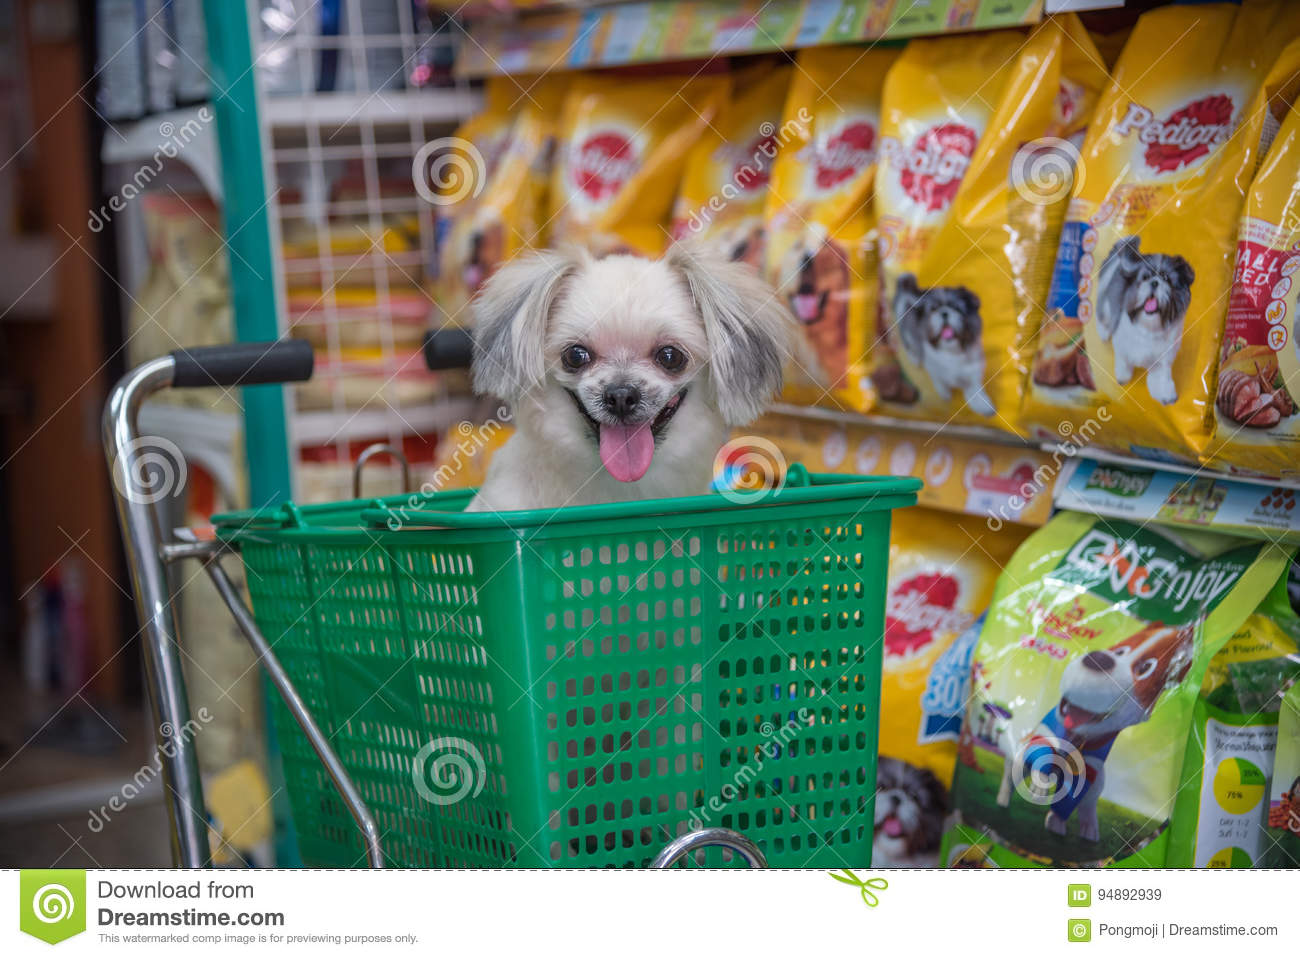 14 919 Pet Shop Photos Free Royalty Free Stock Photos From Dreamstime